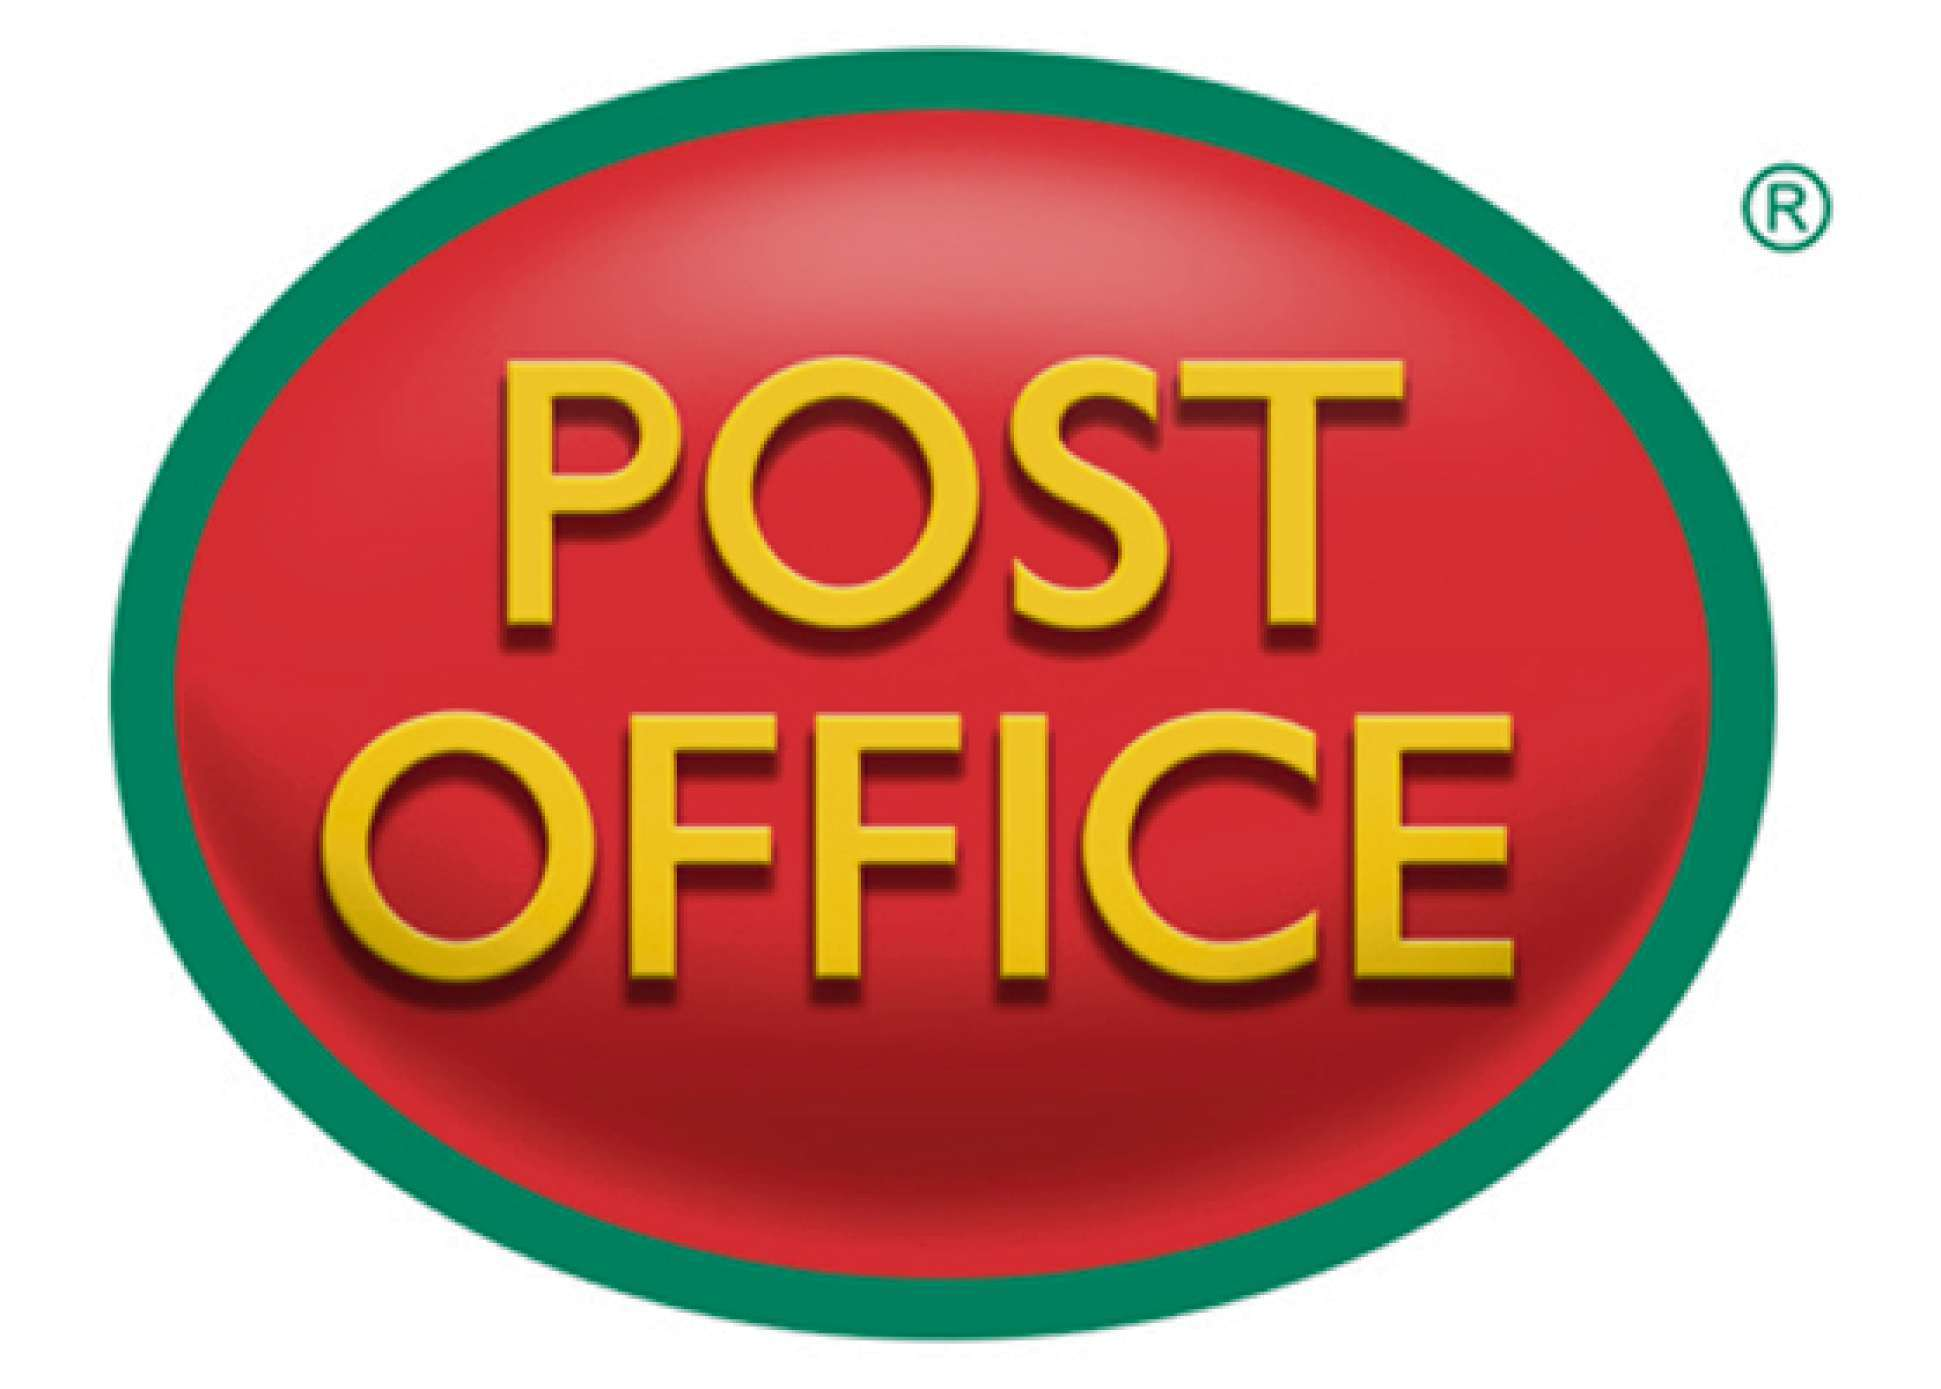 Thorpe Bay Post Office will get a facelift